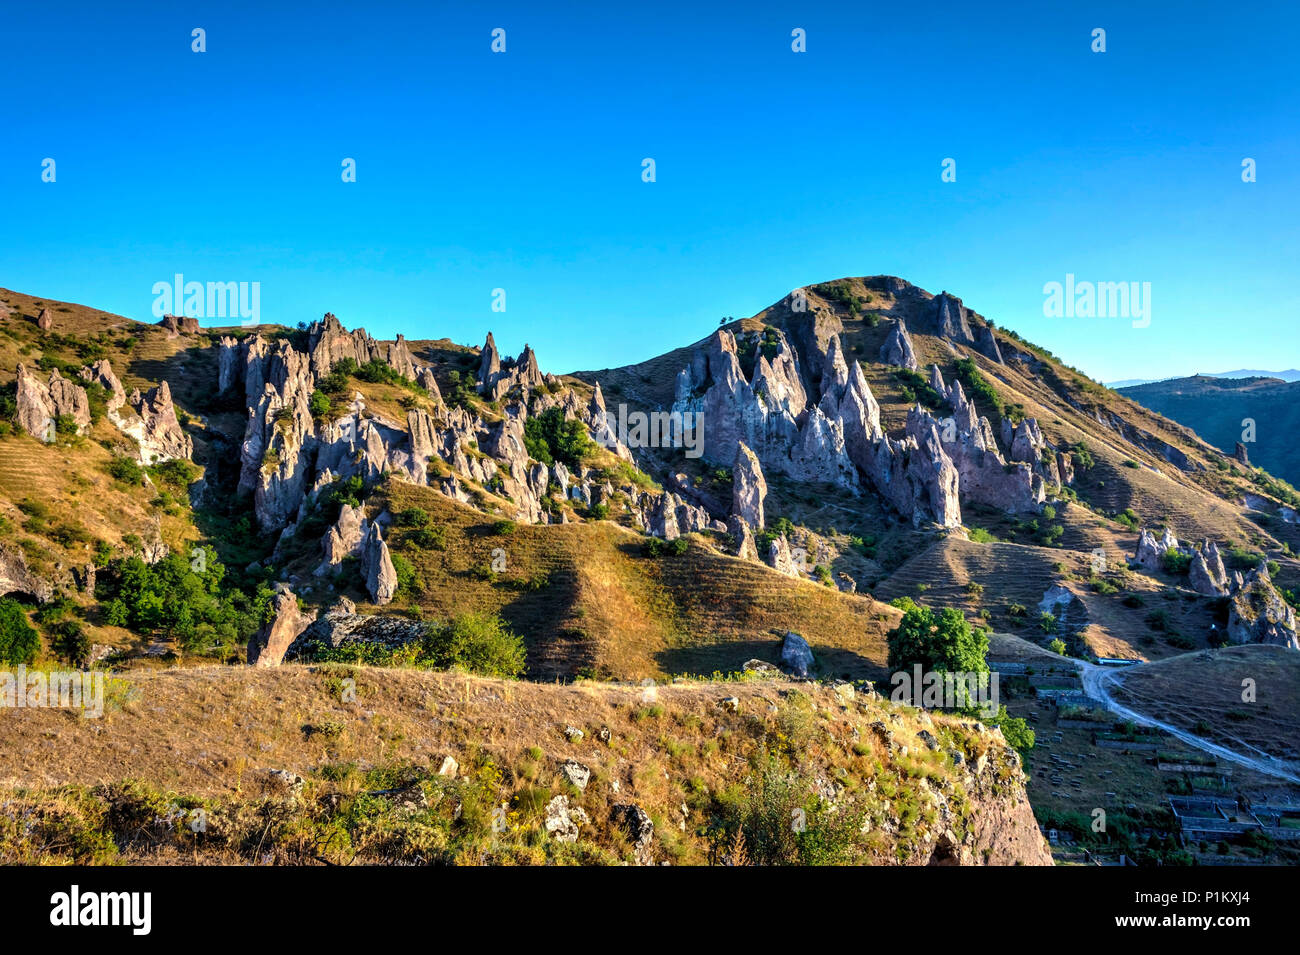 Old Goris town, Armenia with the unique stone formations Stock Photo